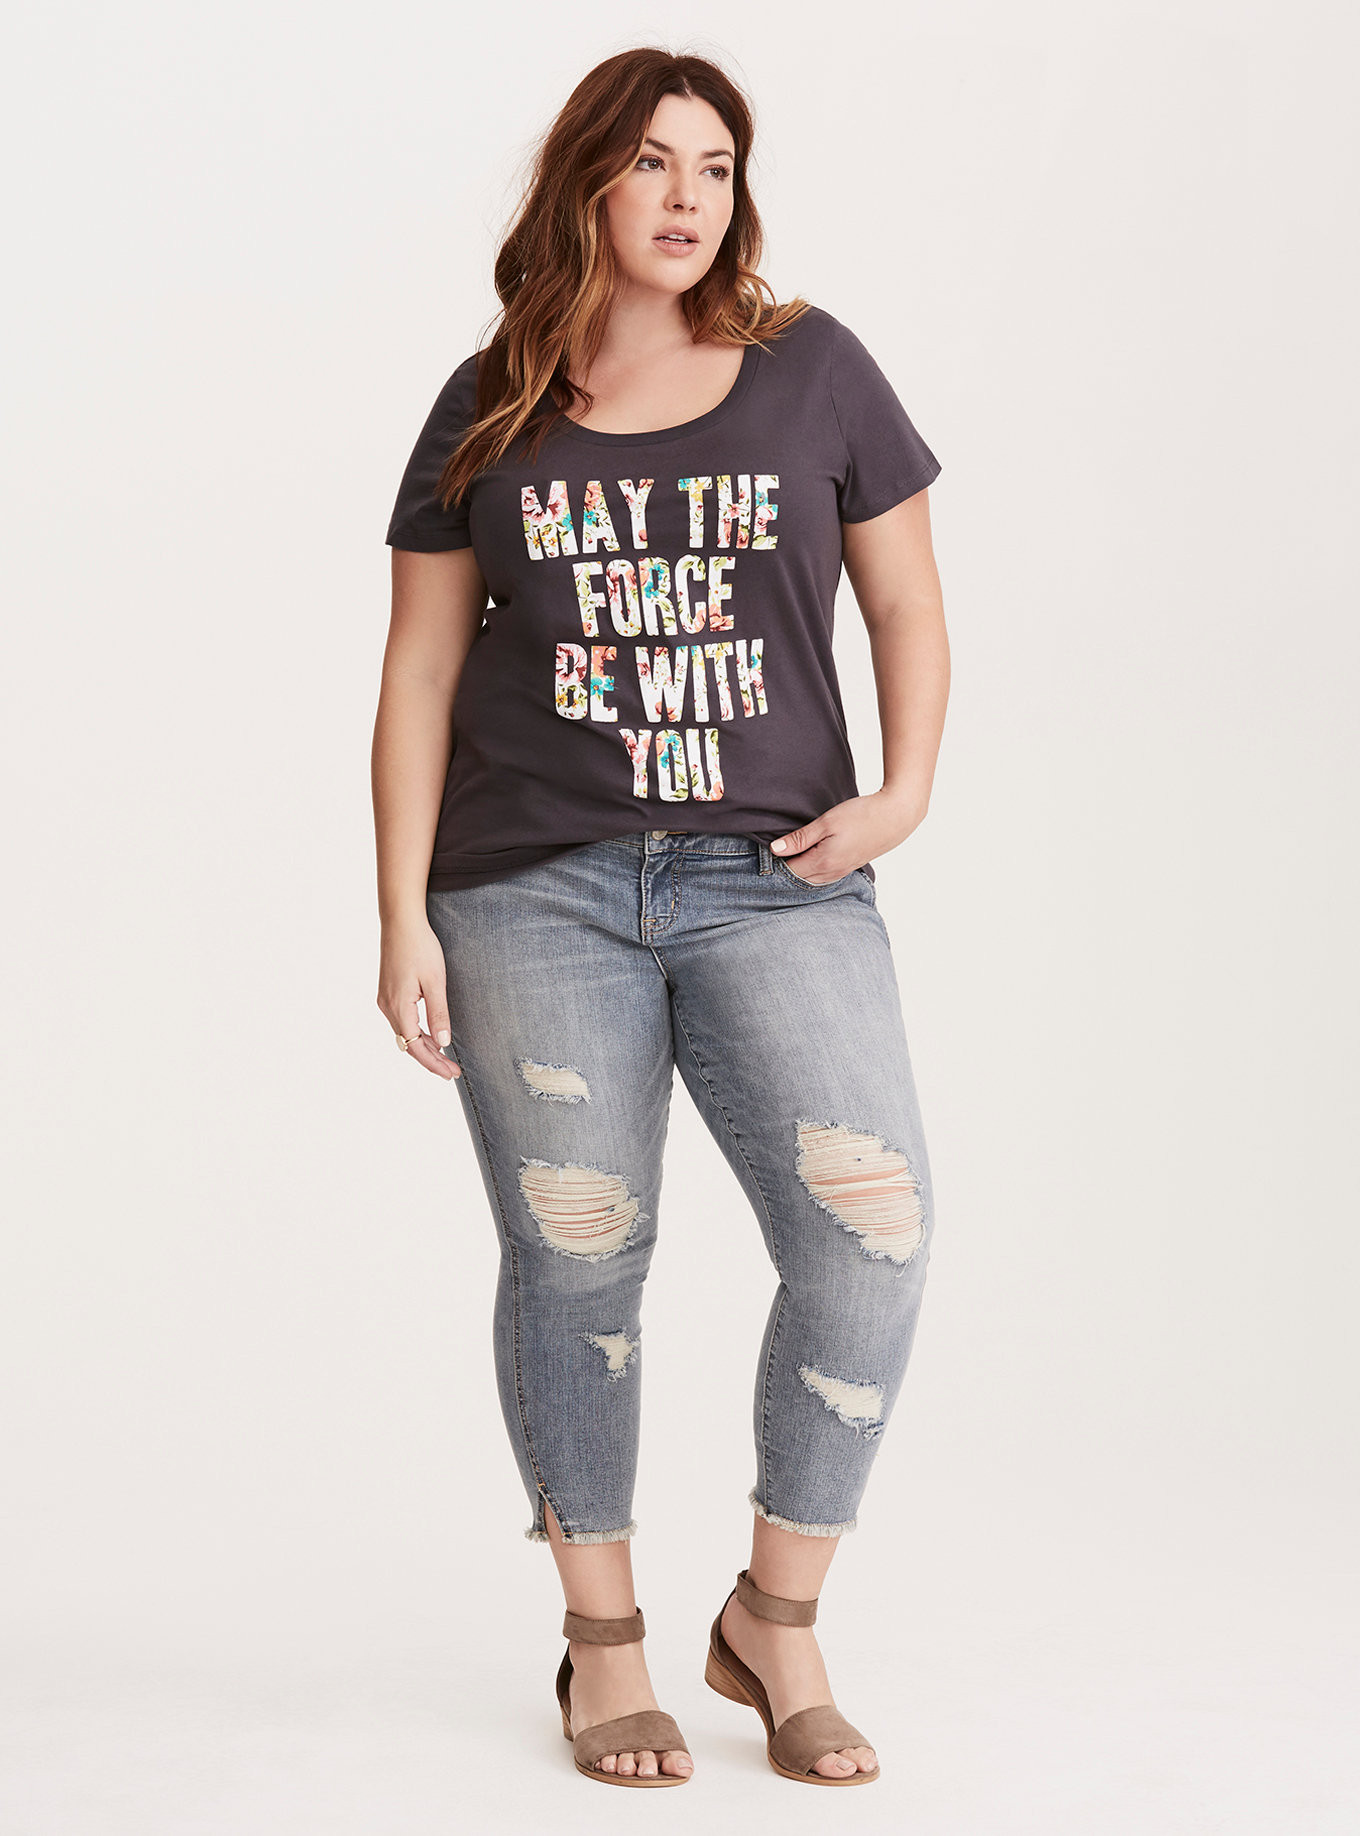 b2117d1012 ... Women s Star Wars Floral May The Force Be With You plus size t-shirt at